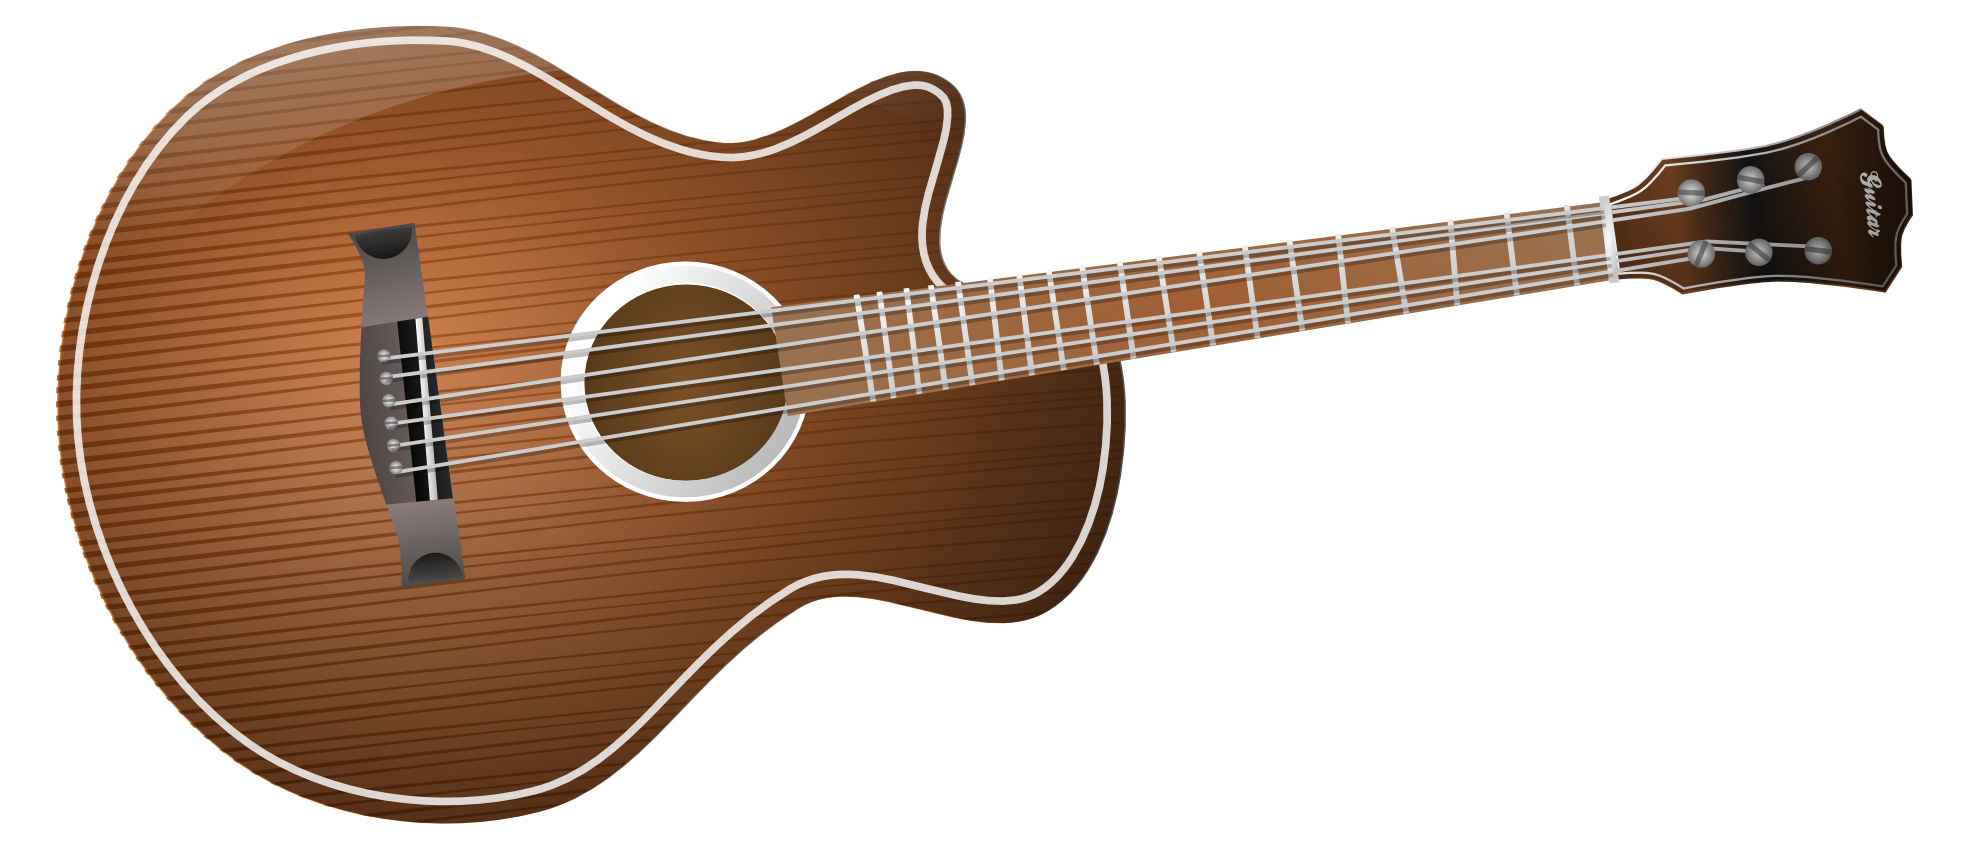 Clipart guitar guitar piano.  collection of transparent